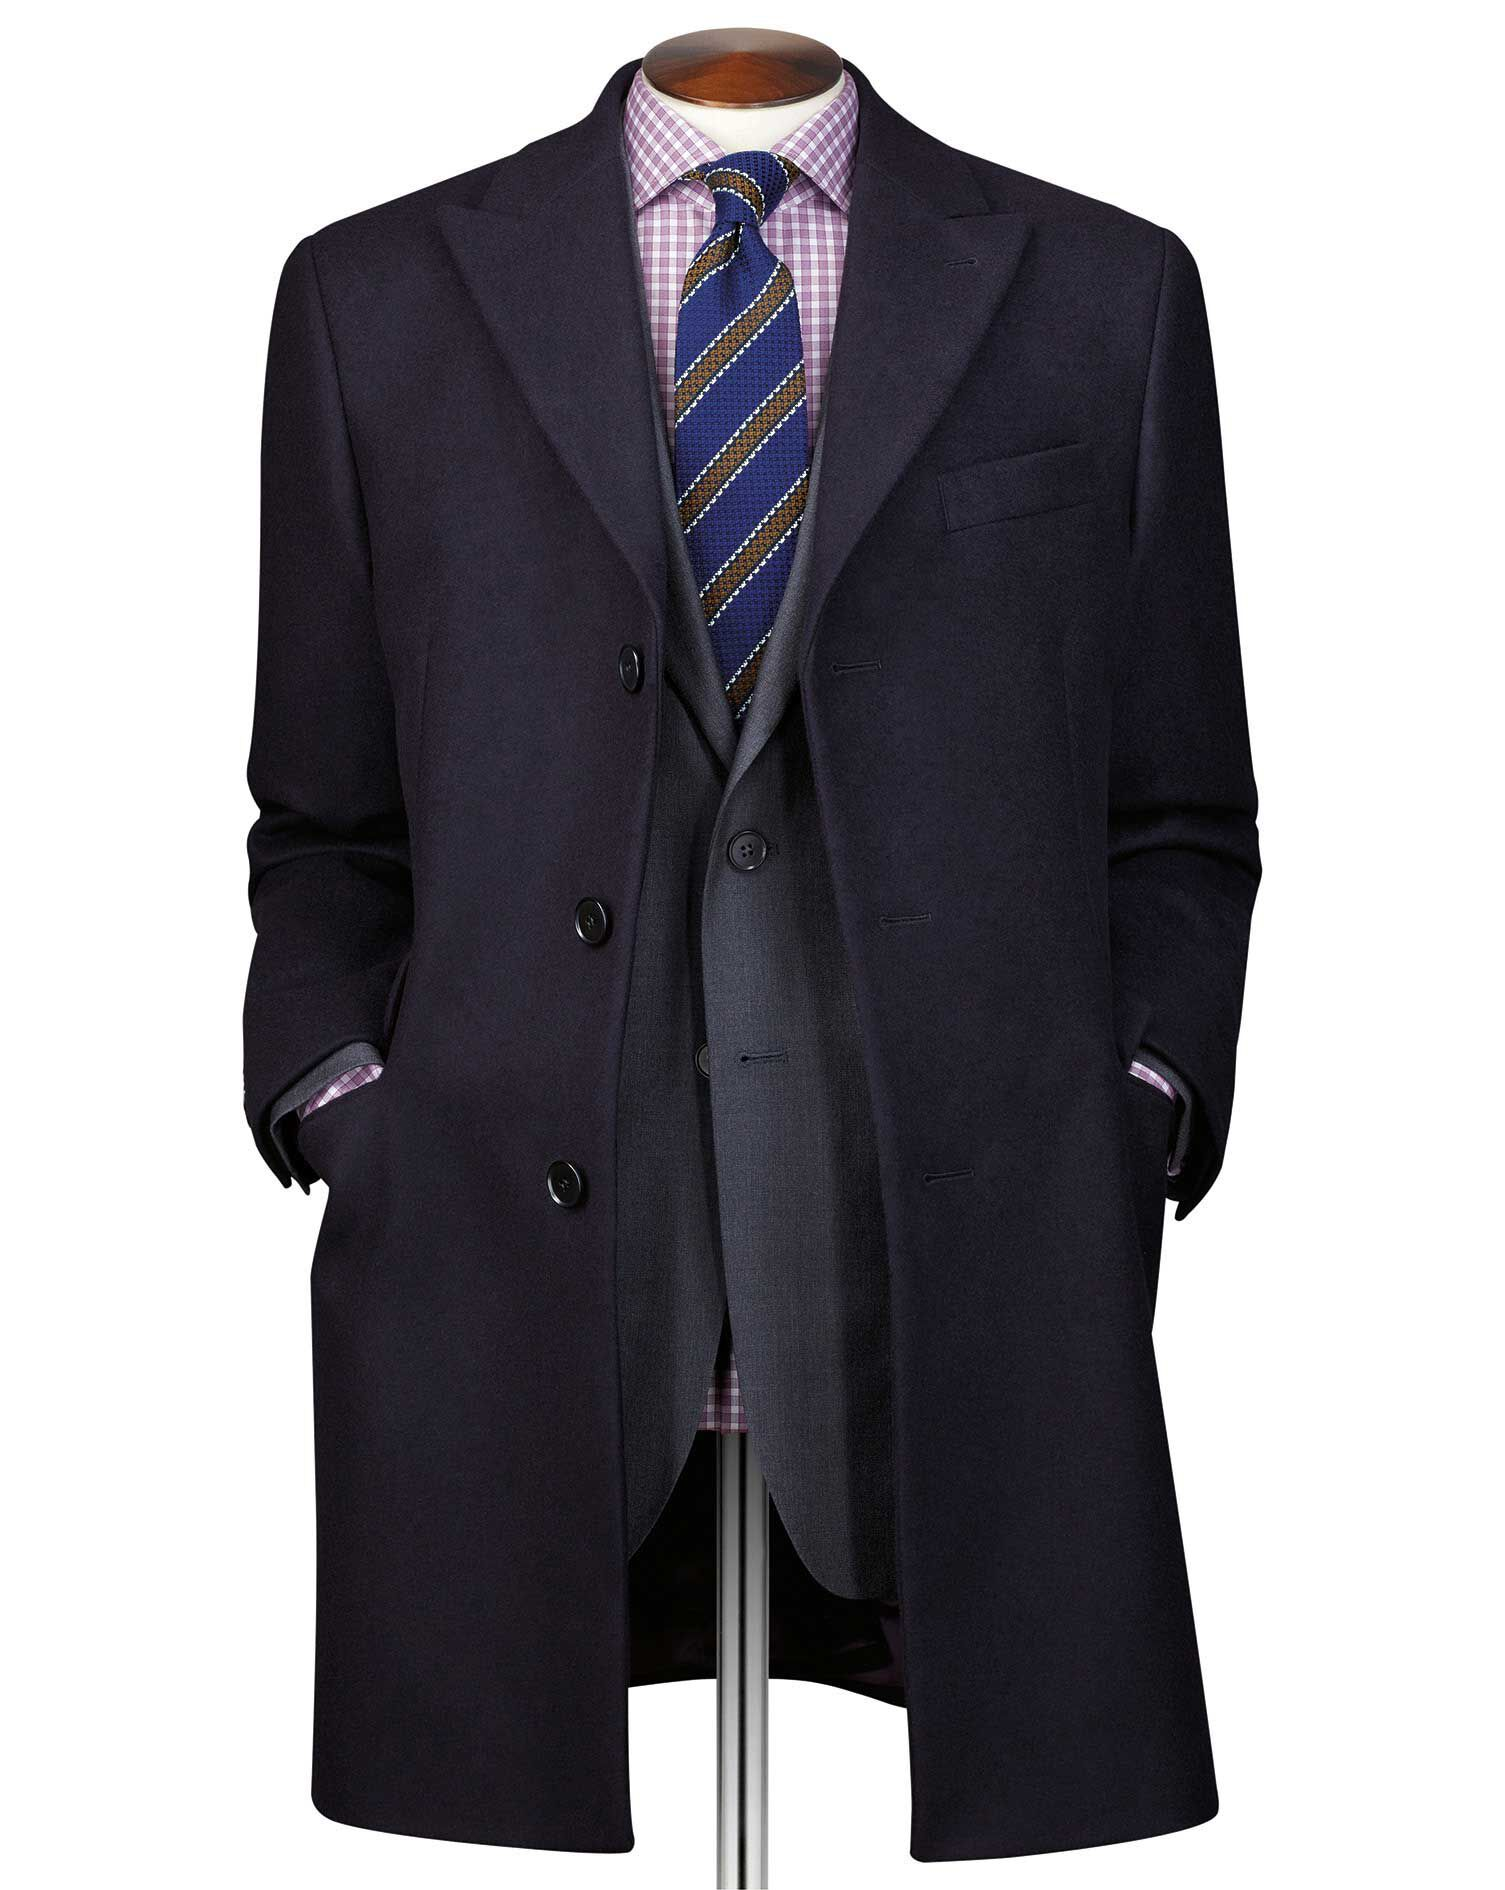 Navy Wool and Cashmere Epsom Overcoat Size 48 Regular by Charles Tyrwhitt